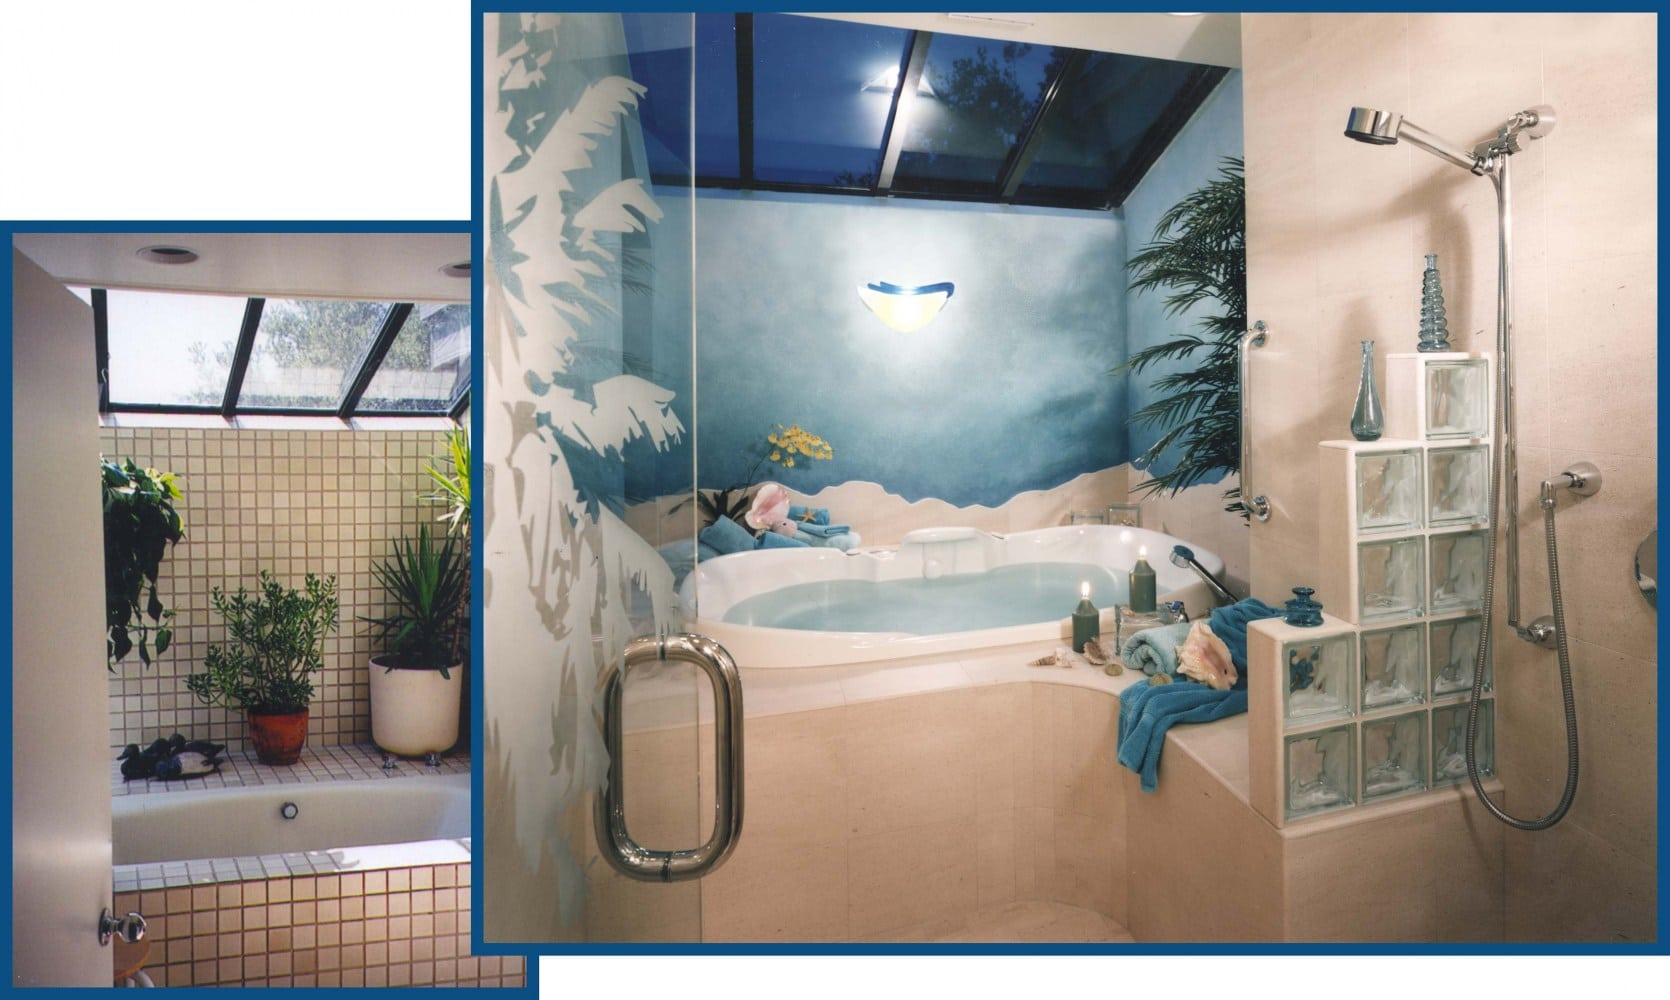 Portola Valley Tub Shower Redesign Before and After